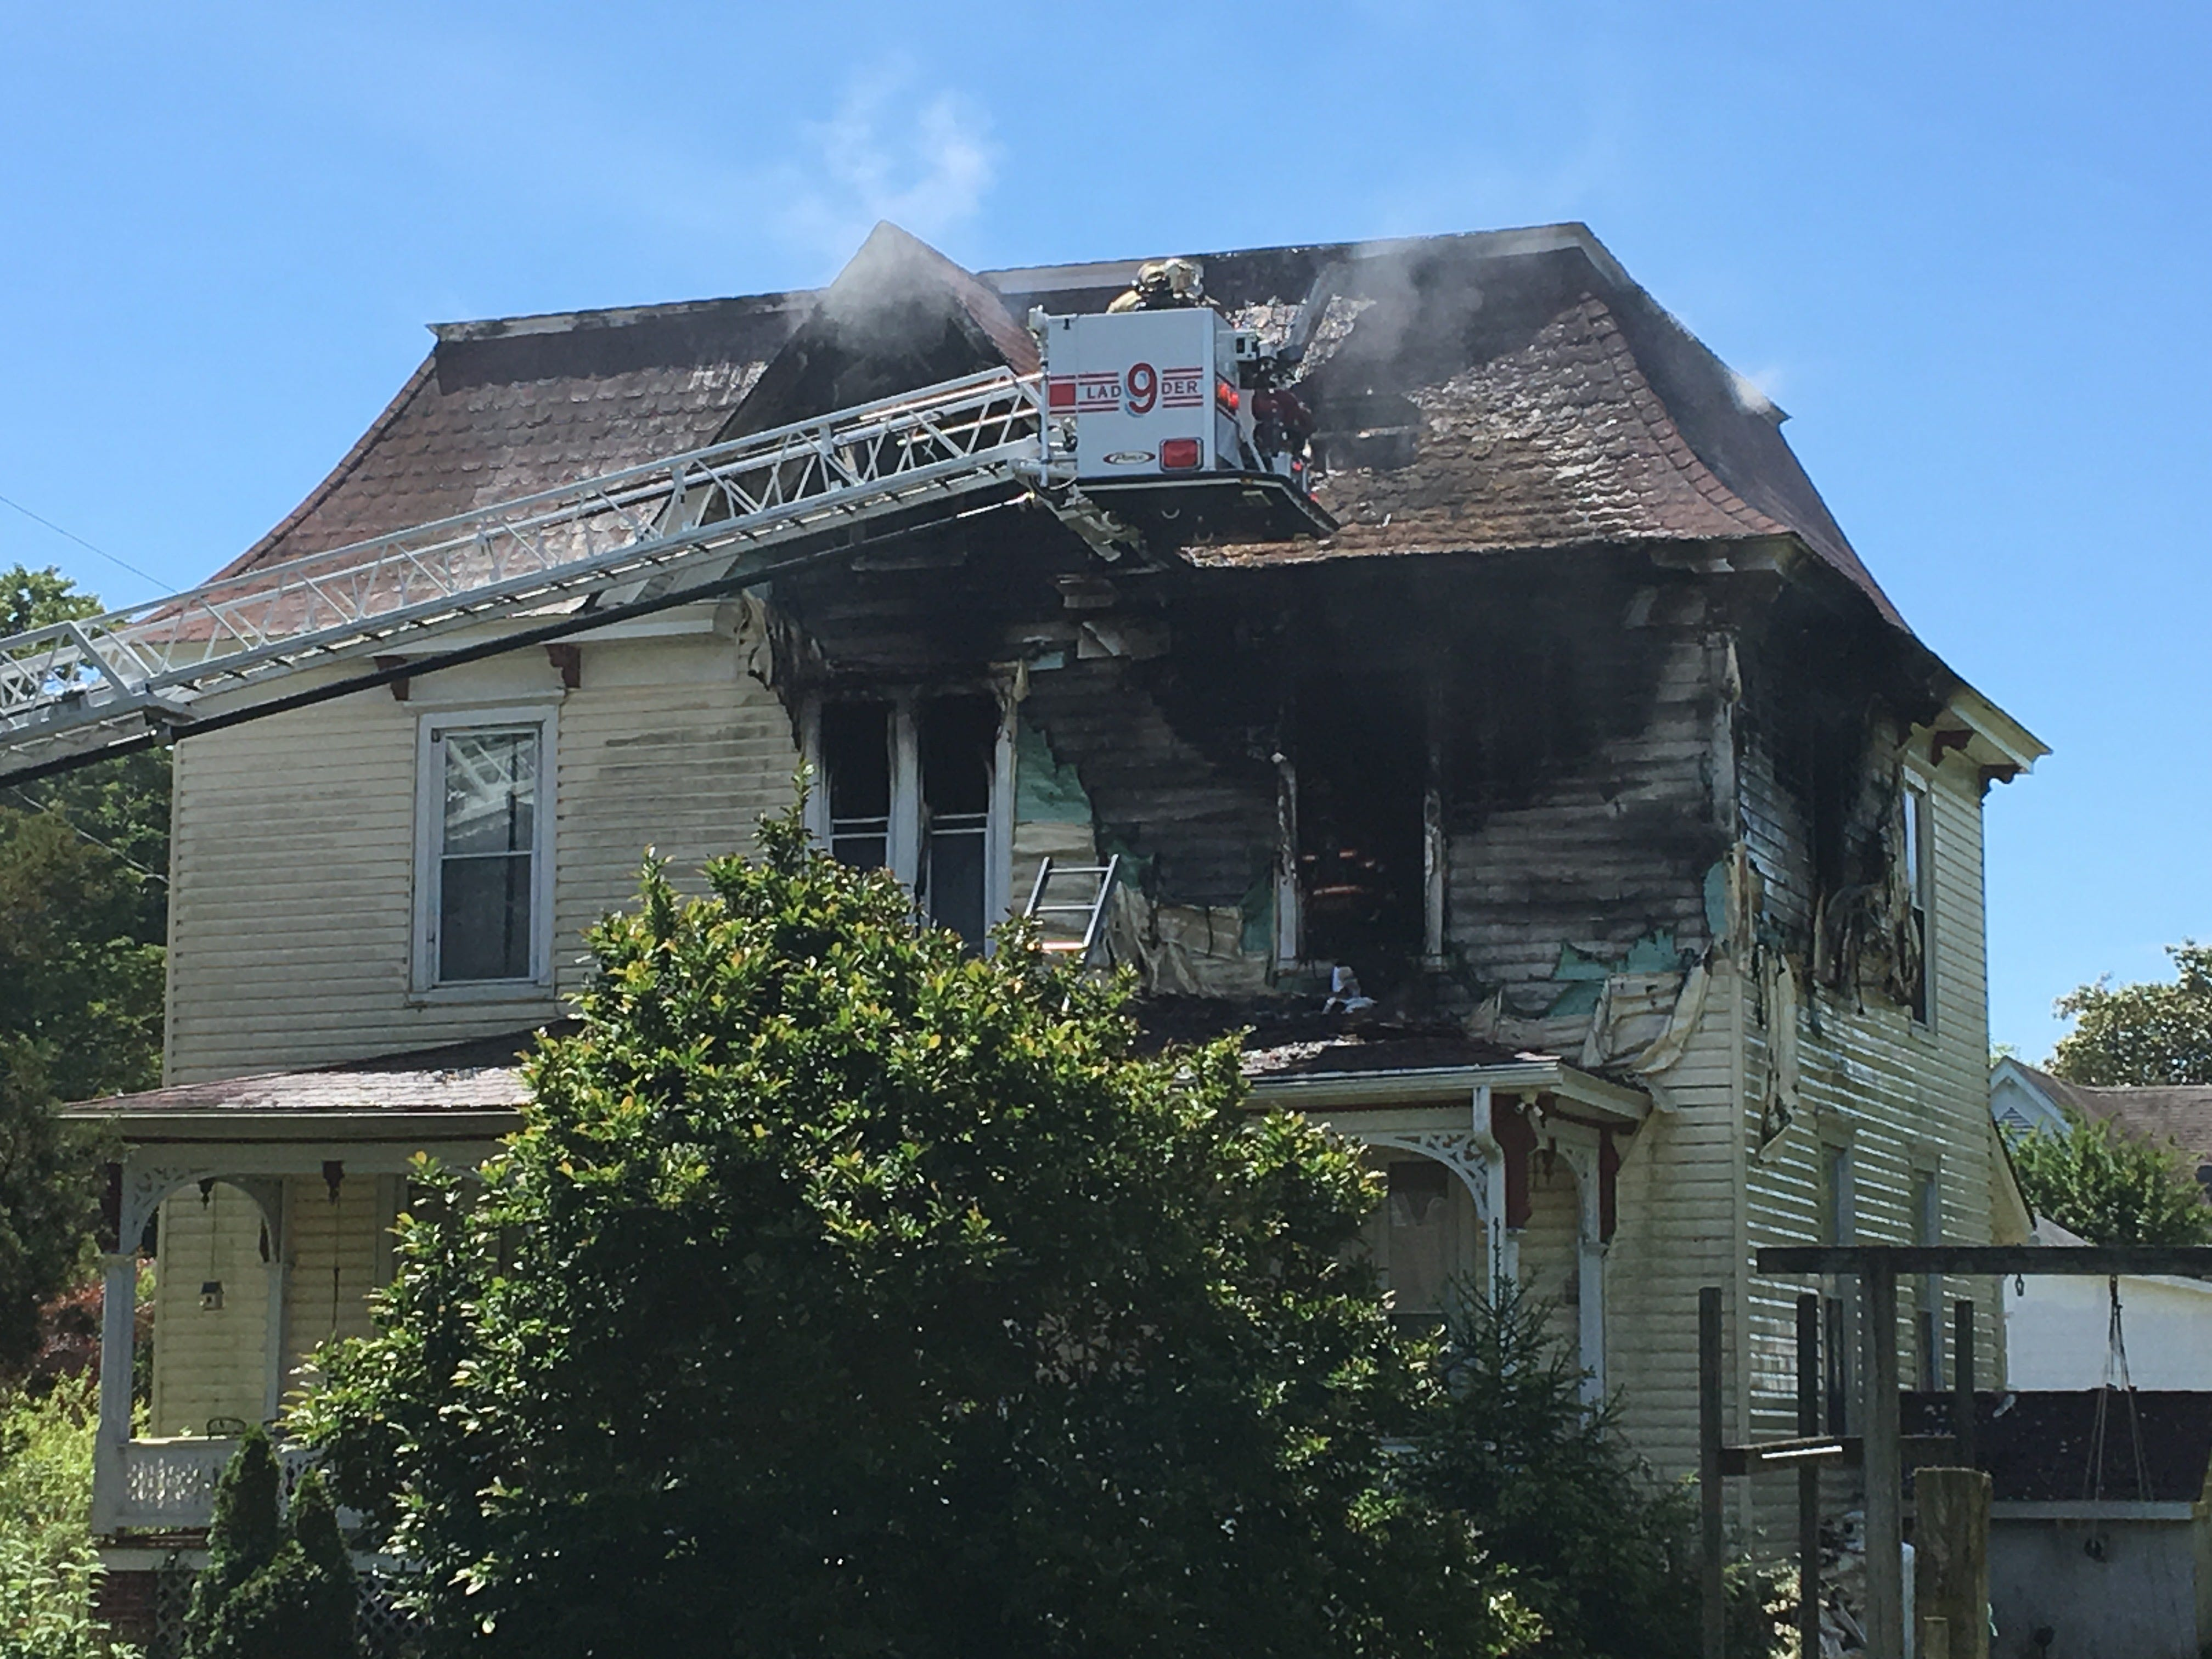 A fire at 2 Holly Street in Onancock, Virginia  on Thursday, May 9, 2019 caused heavy damages.